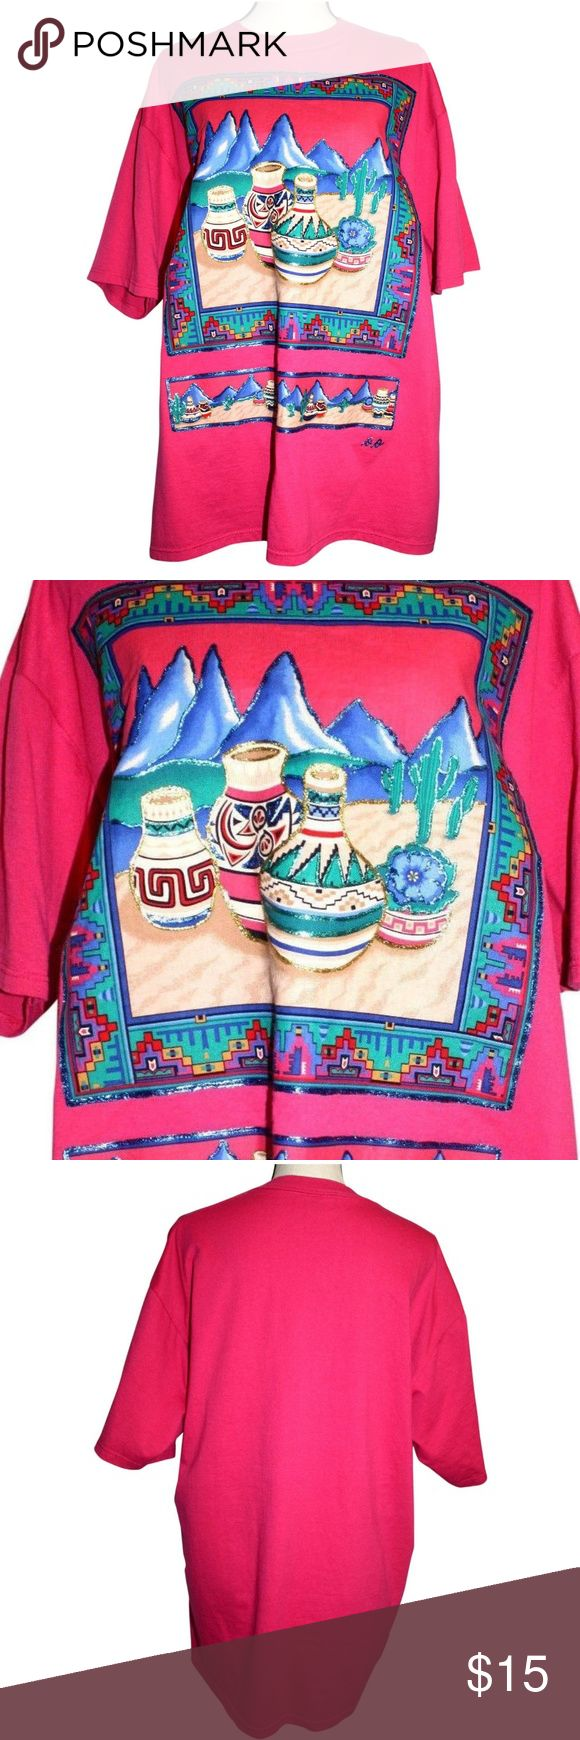 Sunbelt Sportswear Womens XL Top Pink Glitter S/S Sunbelt Sportswear Womens XL Top Pink Embellished Southwestern Glitter Paint.  Short sleeved t-shirt in a blend of 50% cotton and 50% polyester.   Southwestern print with glittery blue, green and gold paint embellishments.   Flat lay measurements are:  Chest:     23 inches Length:   30 1/2 inches Sunbelt Tops Blouses